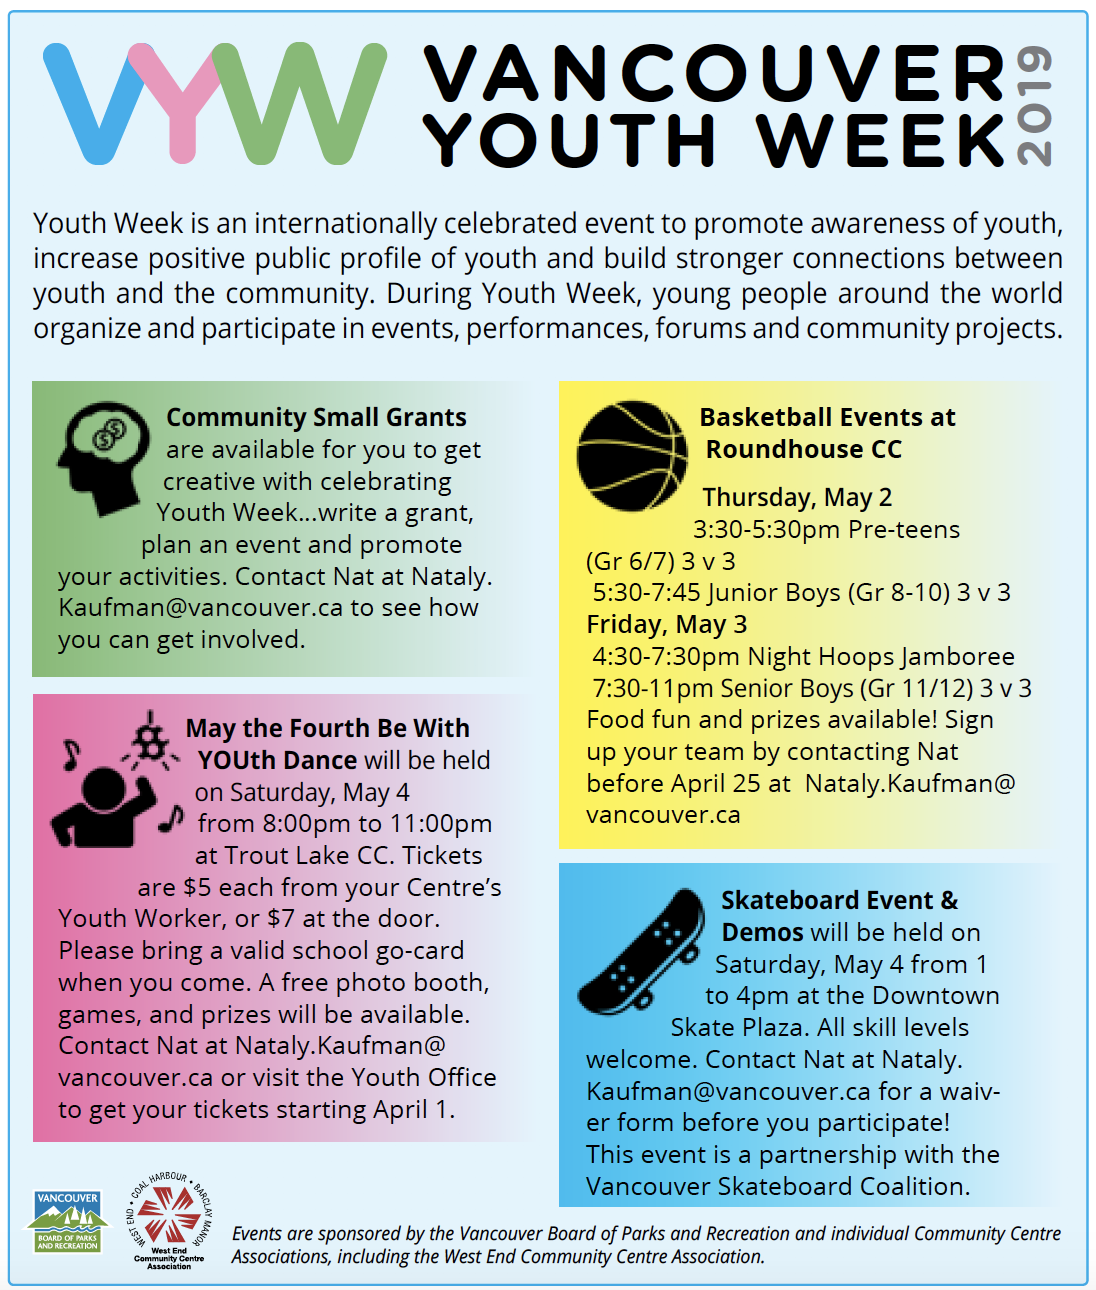 Vancouver Youth Week 2019 West End Community Centre